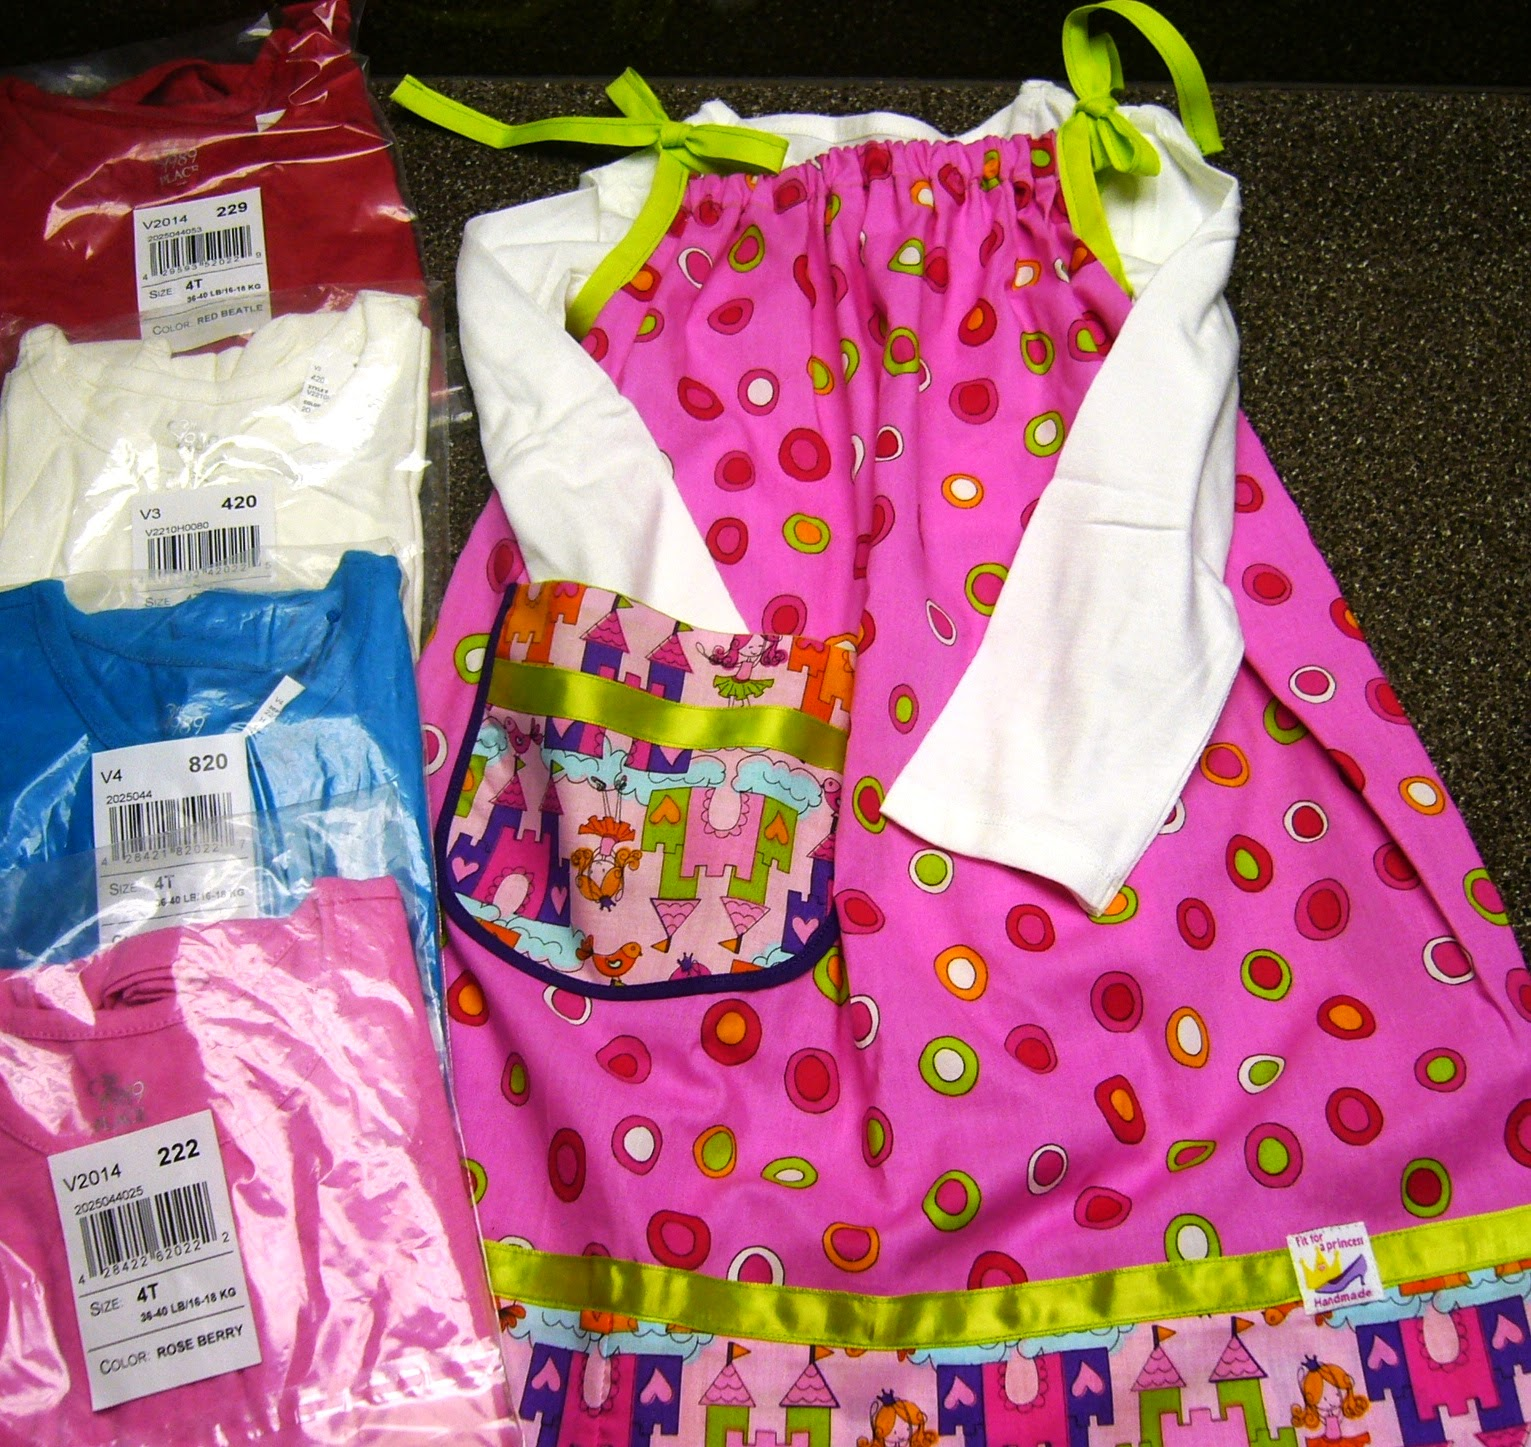 Princess pillowcase dress for Operation Christmas Child shoebox.